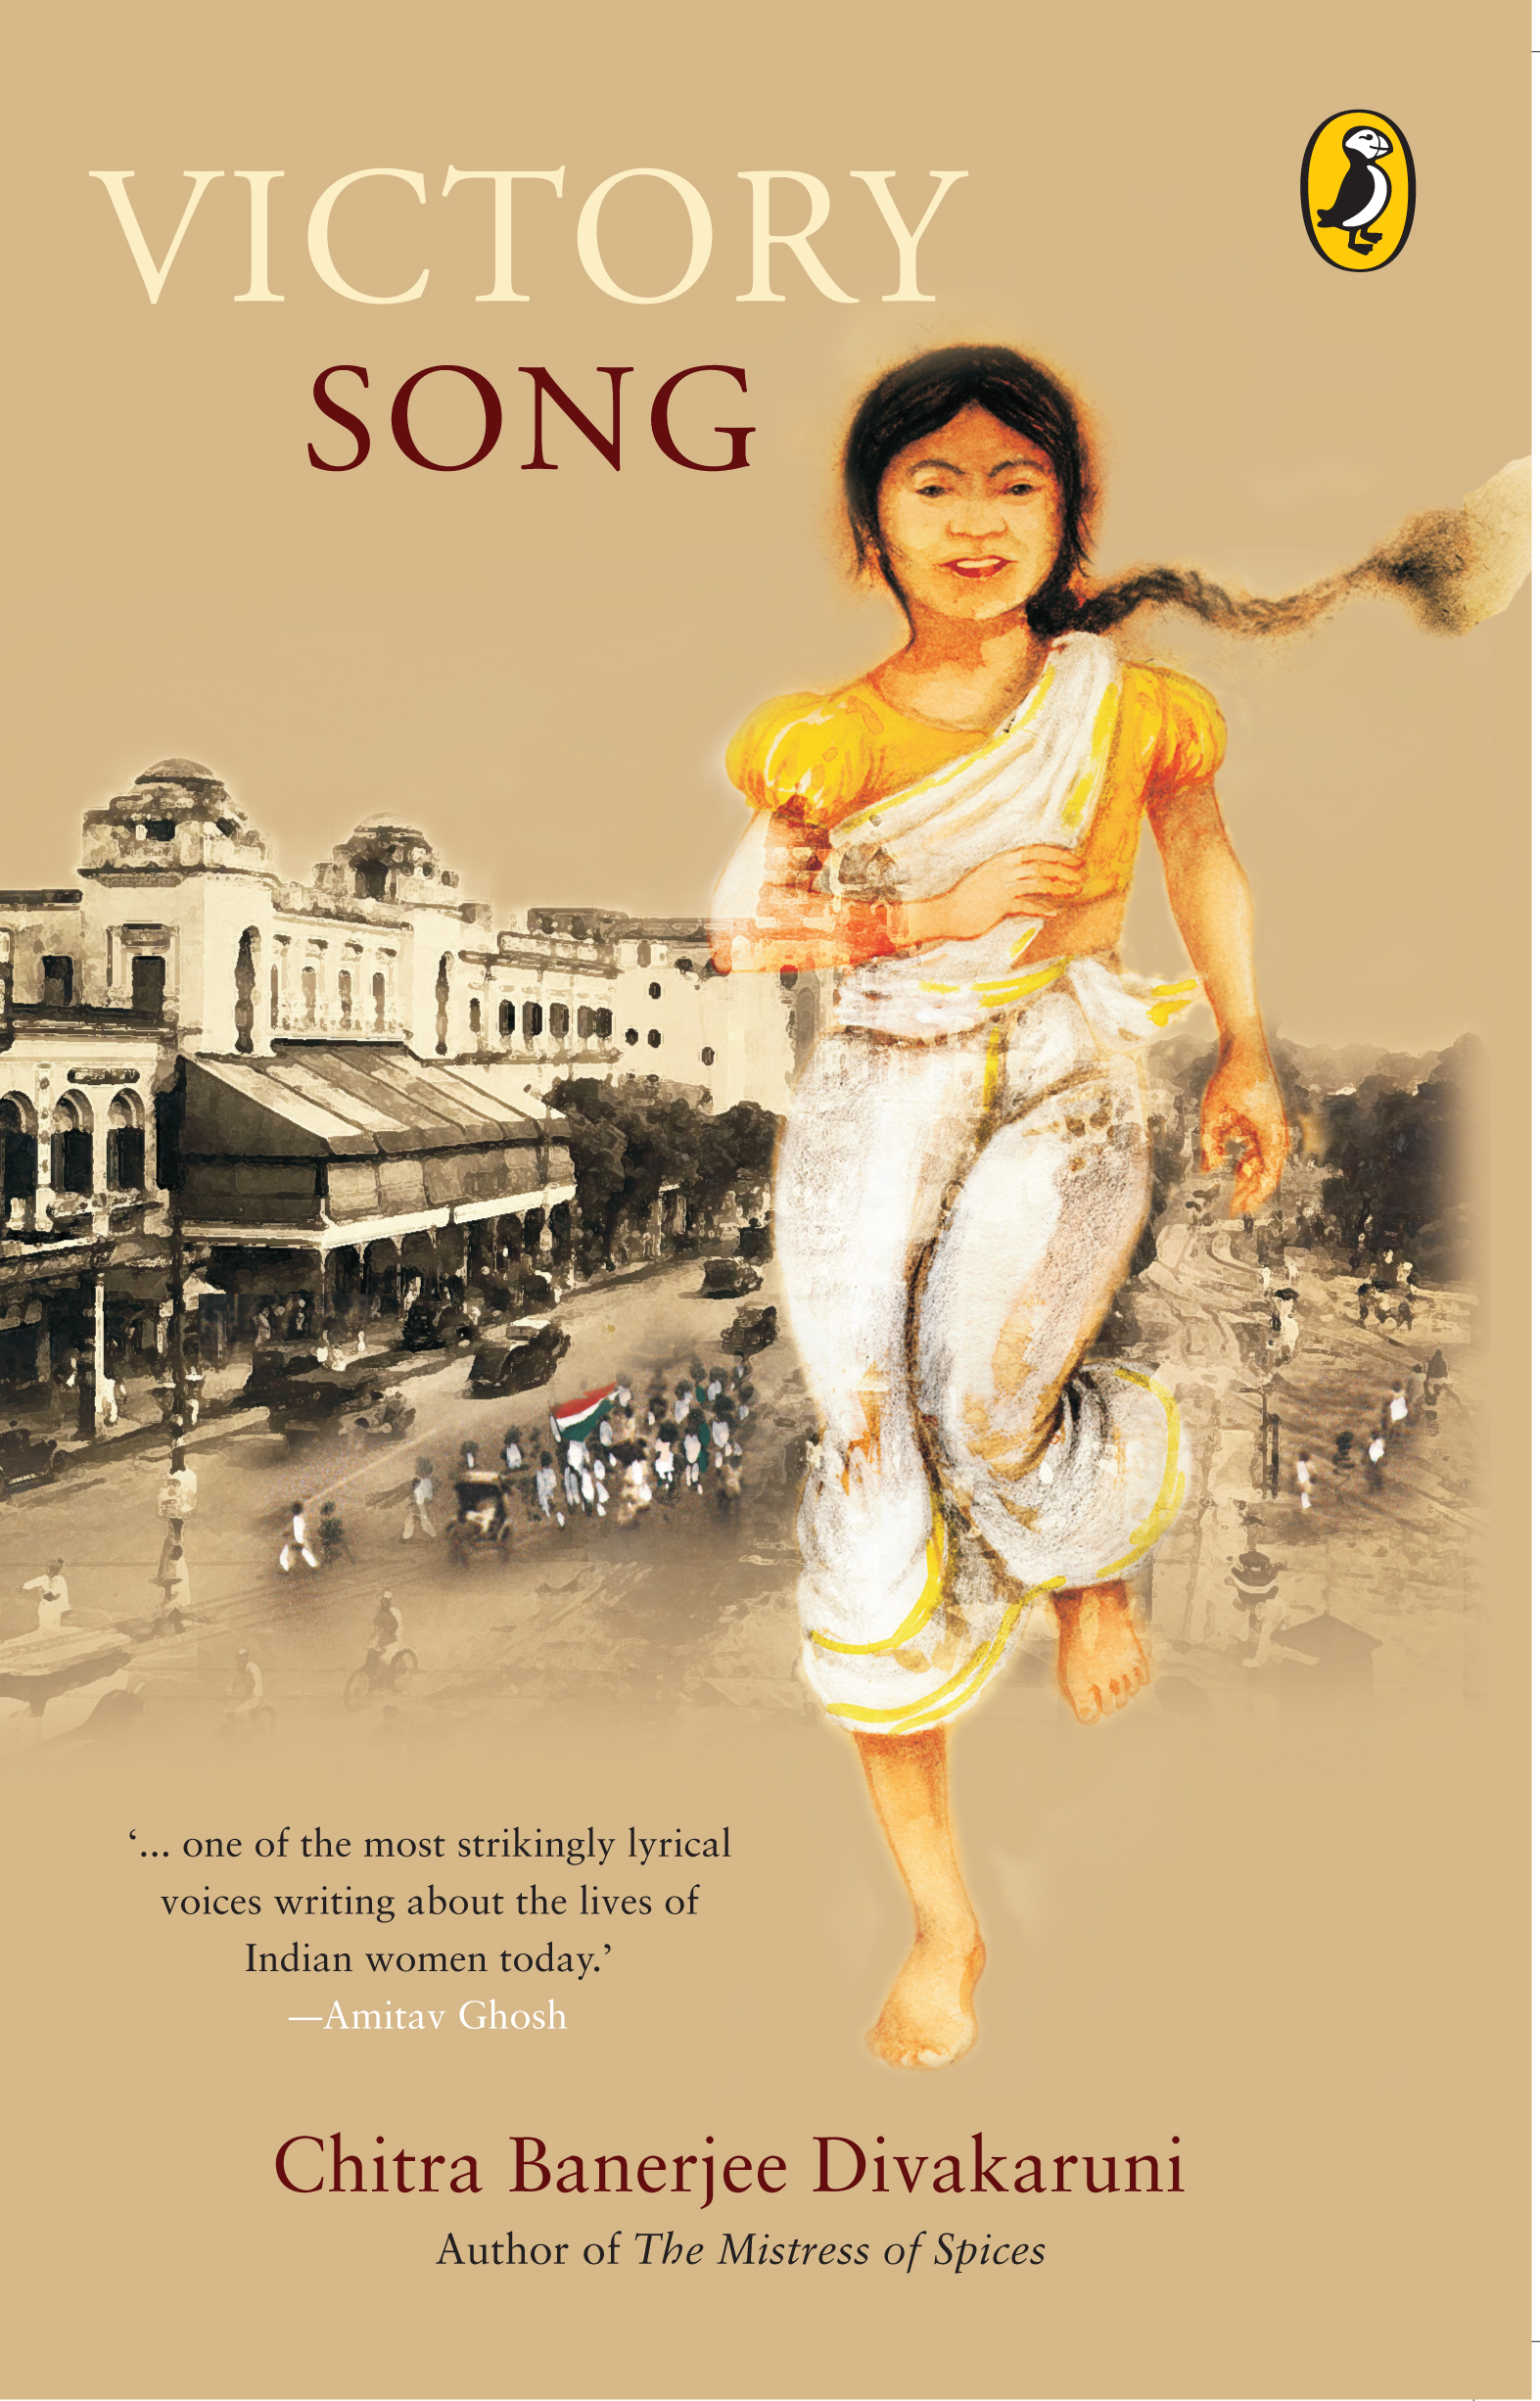 Victory song India.jpg